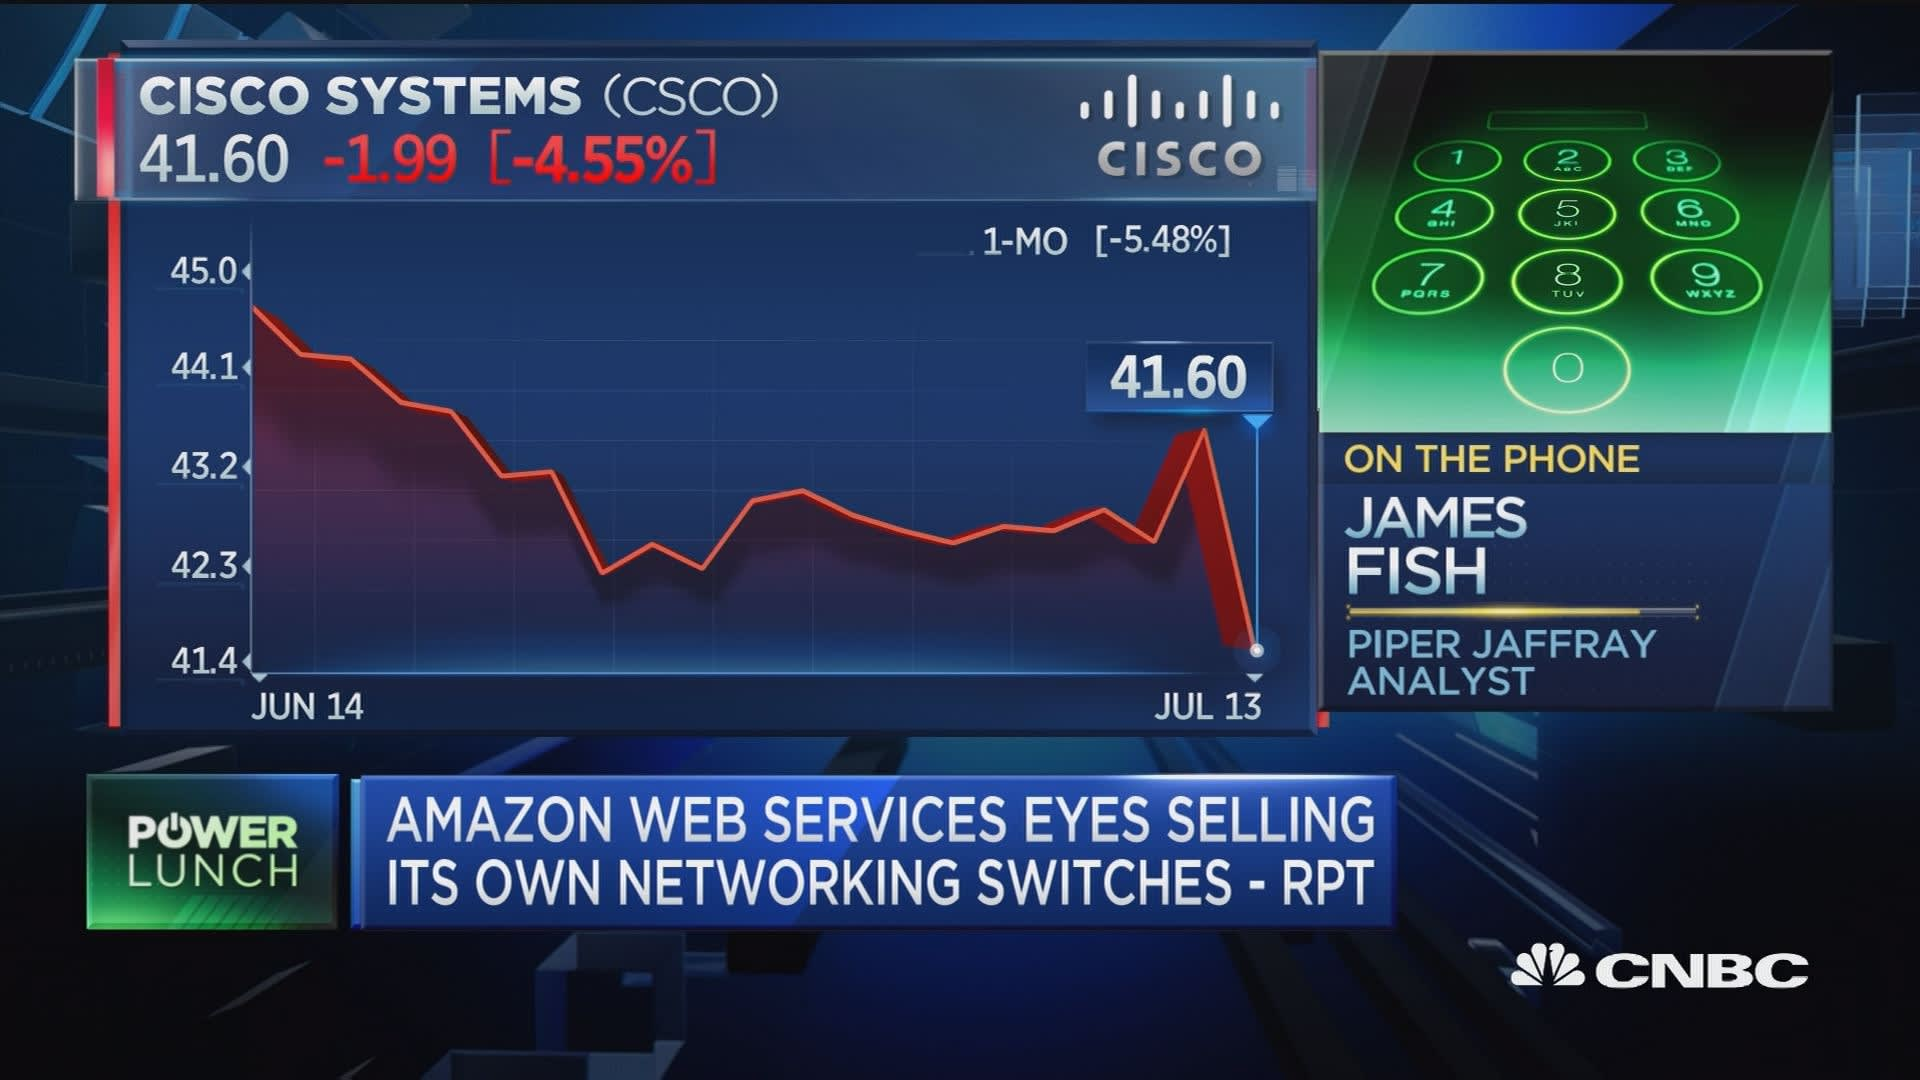 Amazon Web Services Said To Eye Network Devices Networking Stocks Tank